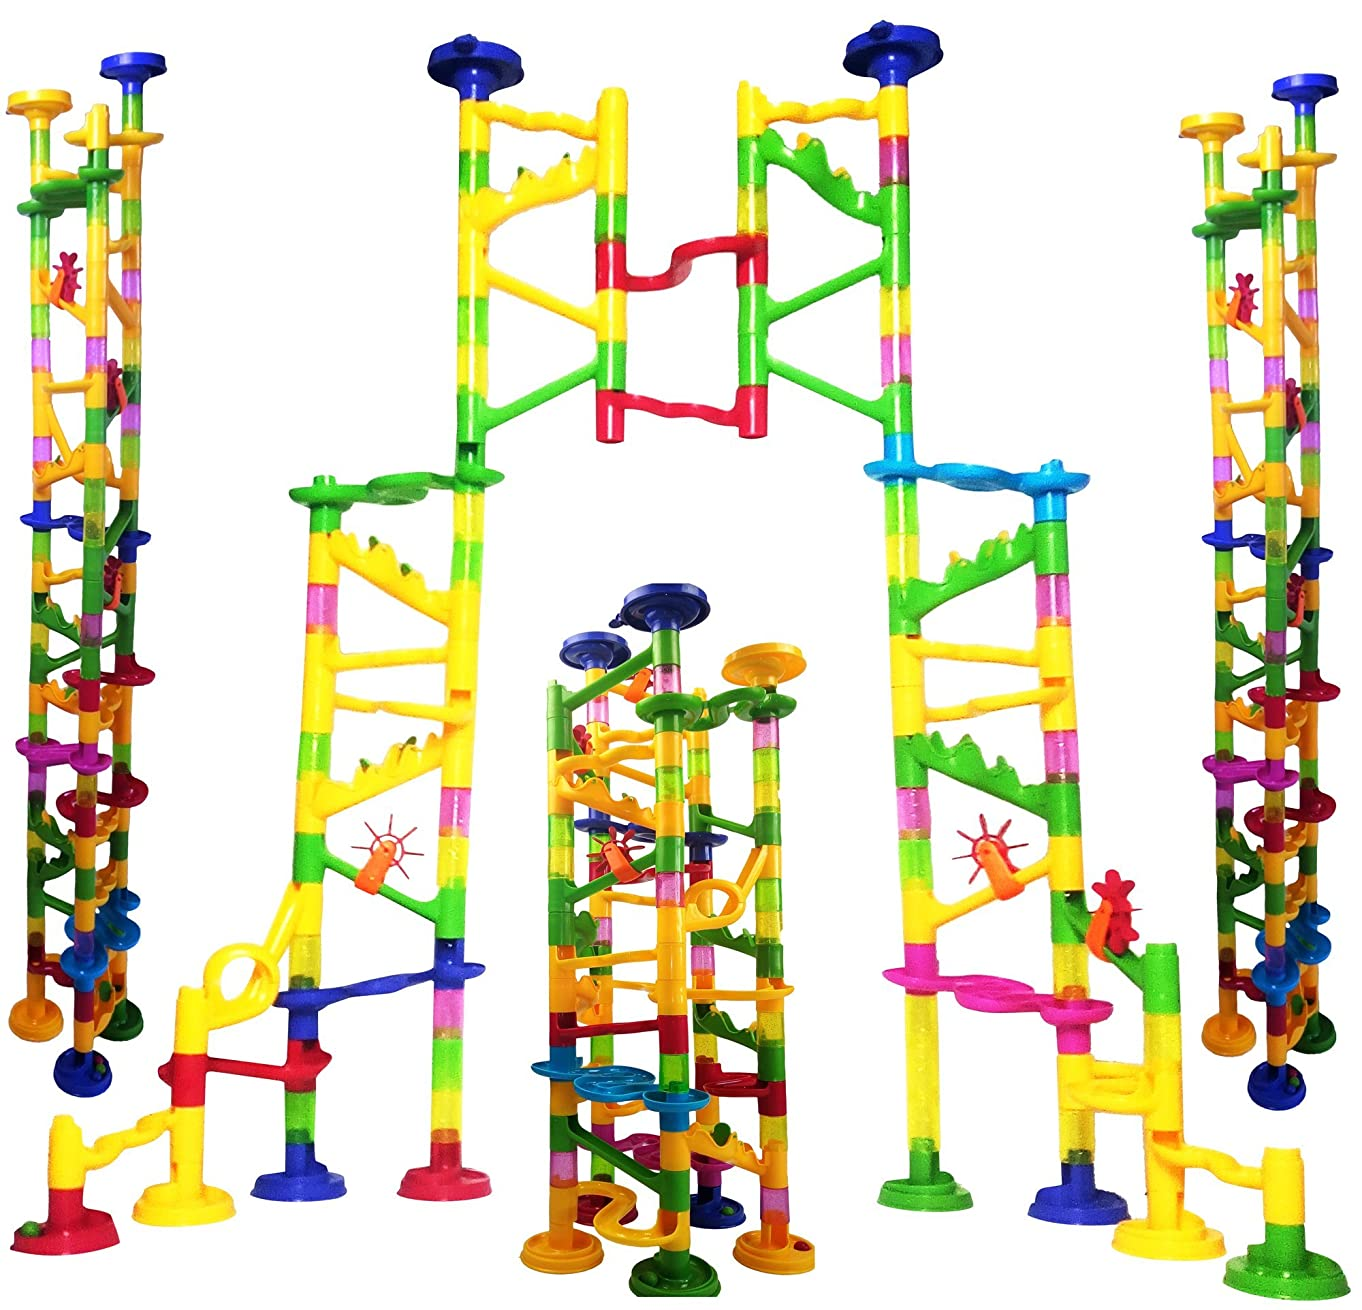 "Big Marble Run Coaster Maze Toy 115 Pieces Building Set: 82 Blocks + 33 Safe Plastic Marbles. 250"" Long Marble Tracks. STEM Learning Games for Toddlers. Kids Building Kits."